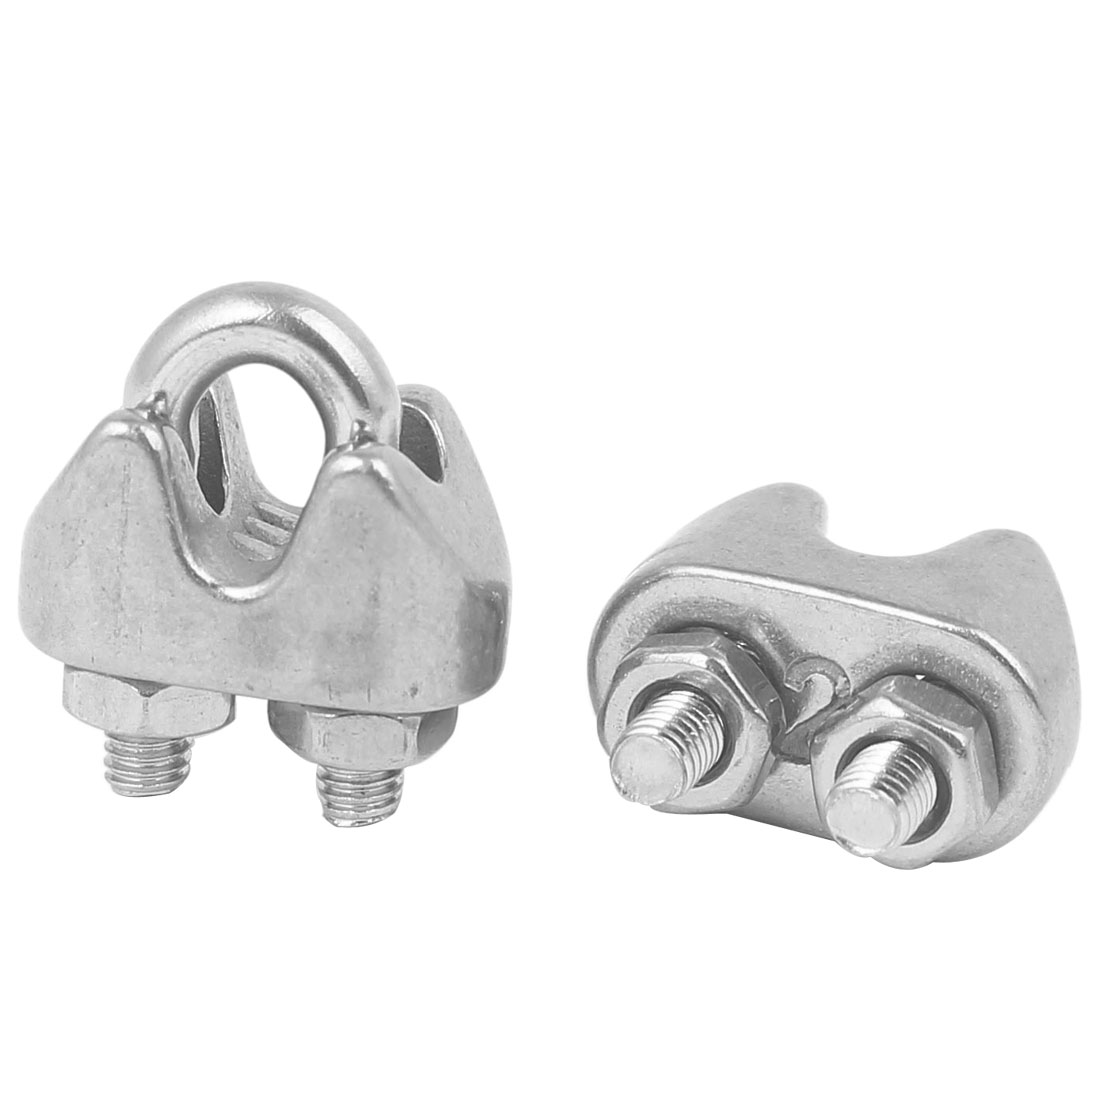 medium resolution of uxcell 2pcs m2 3mm 0 12 u shape bolt saddle clamp 304 stainless steel cable